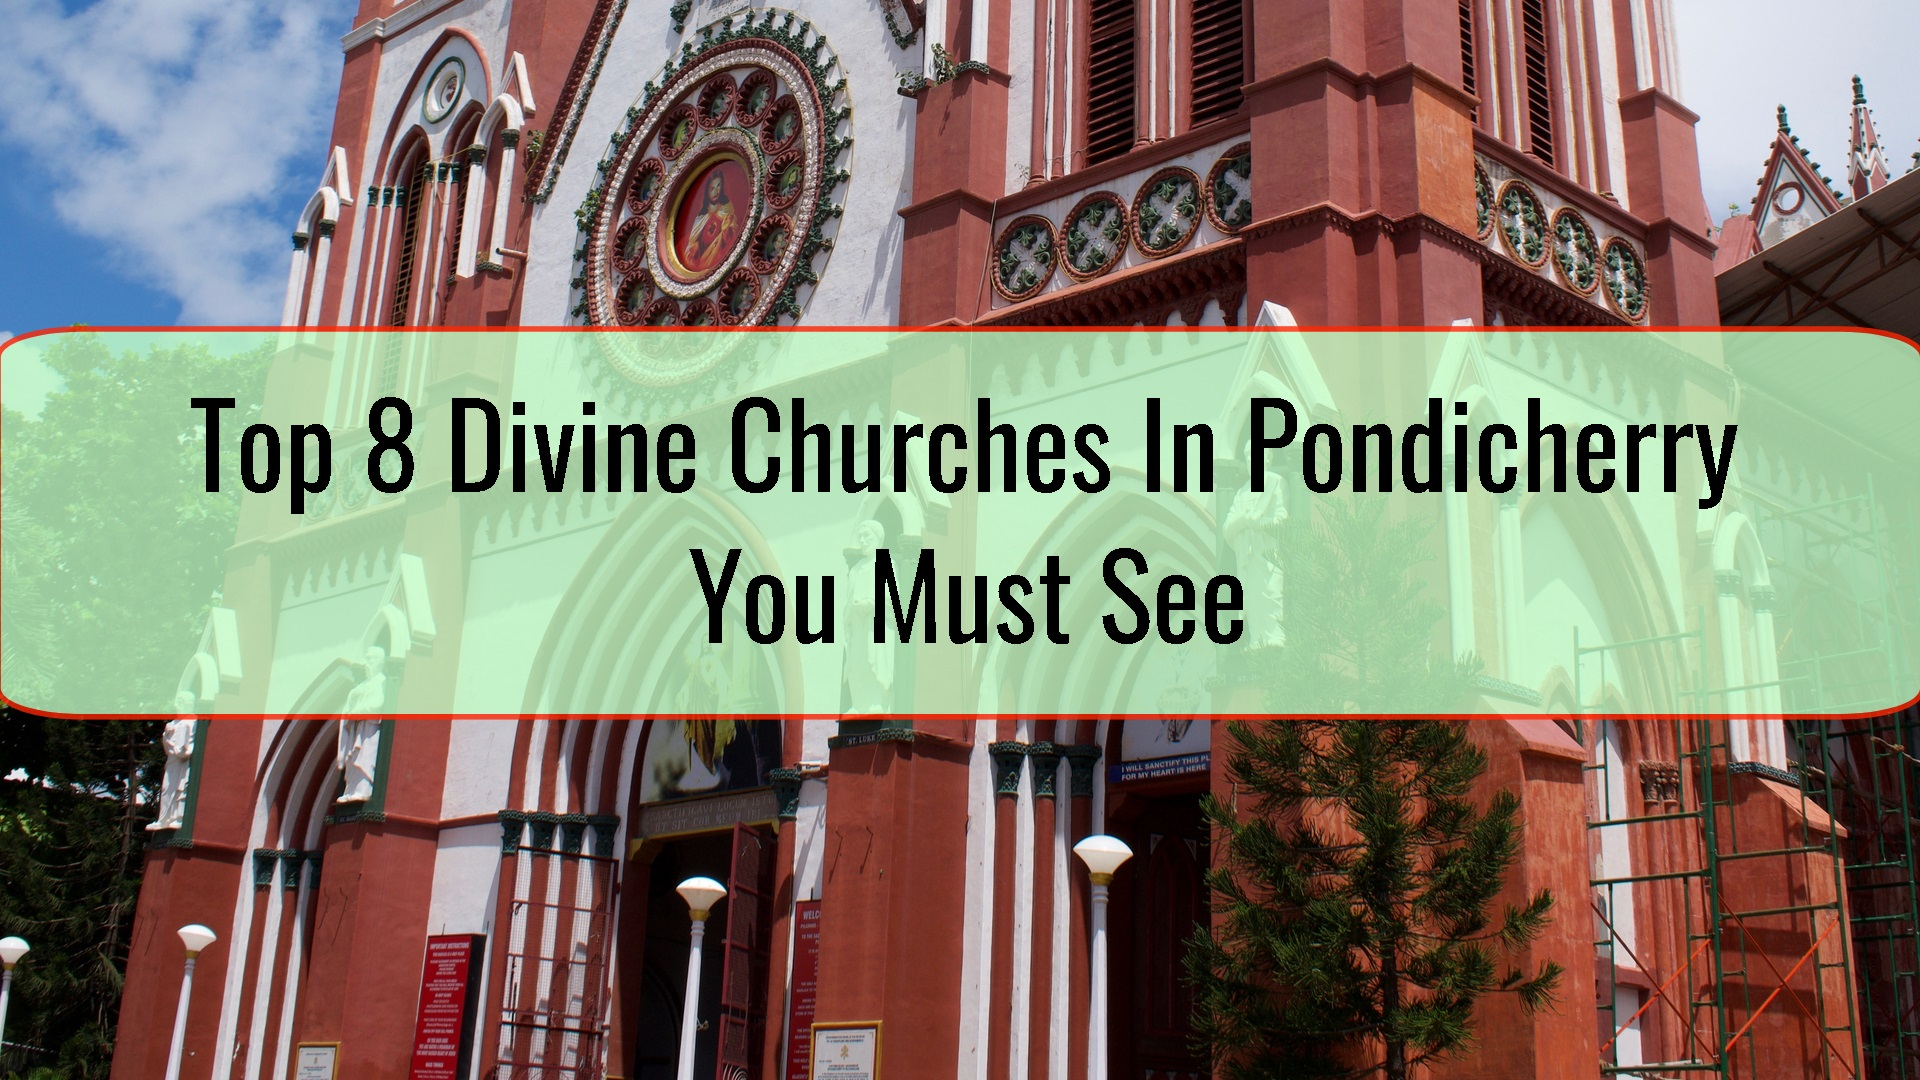 Top 8 Divine Churches In Pondicherry You Must See